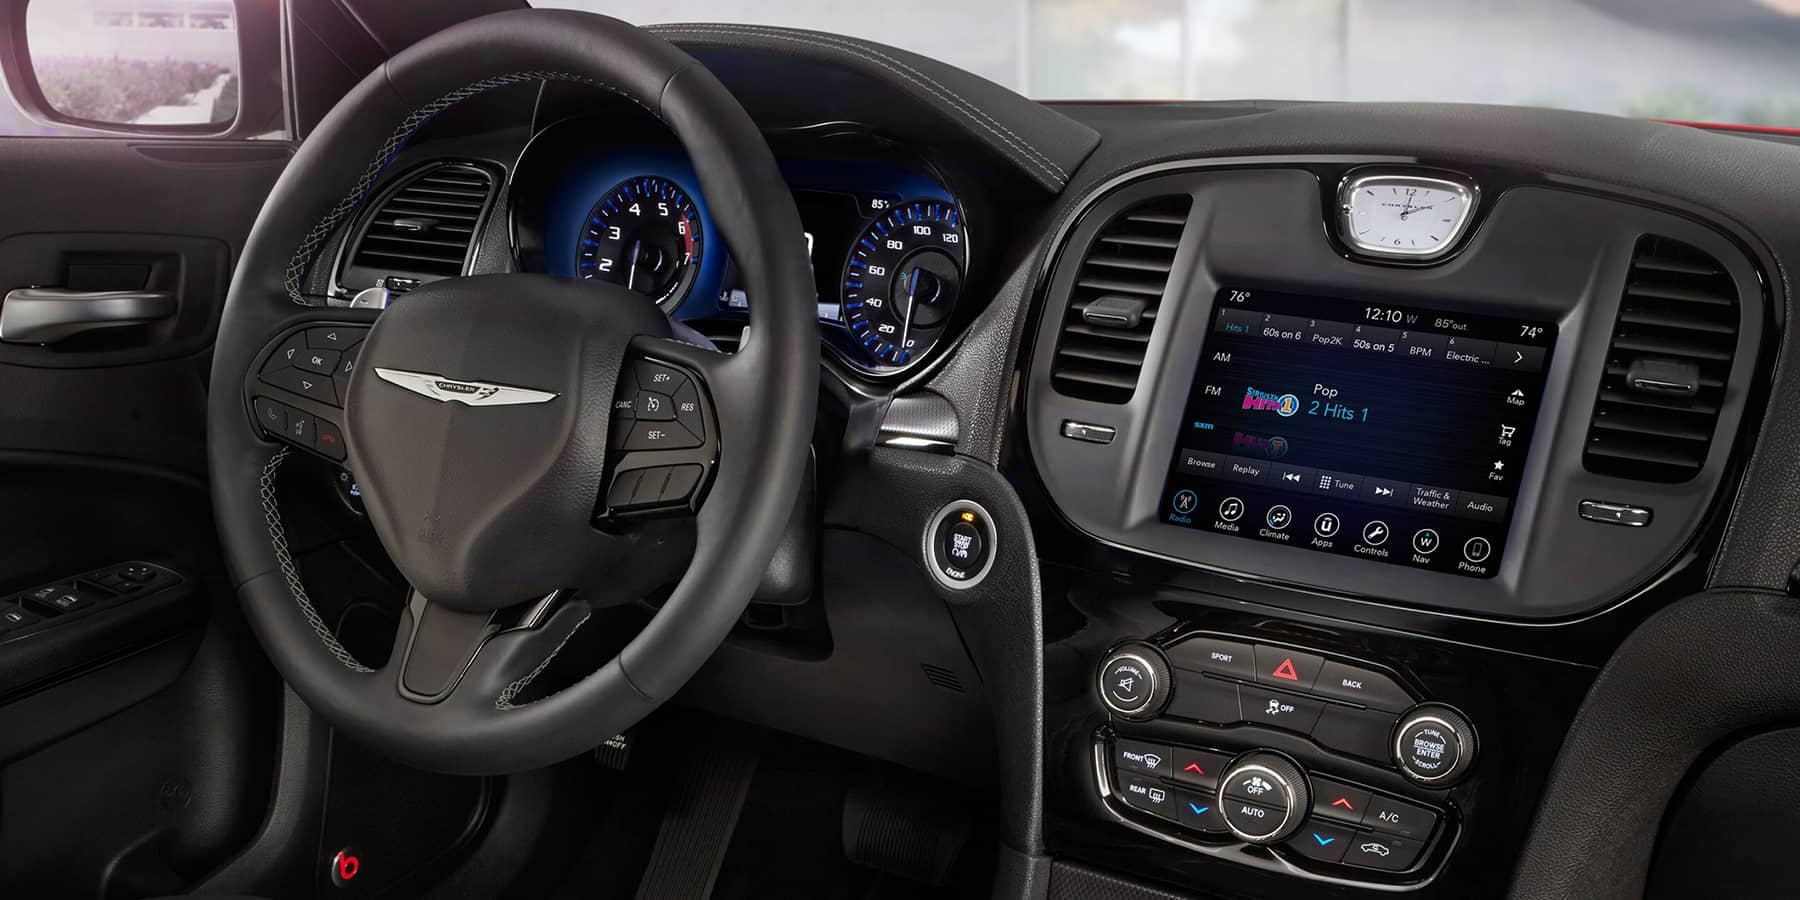 2019 Chrysler 300 Interior Features | Mansfield MA